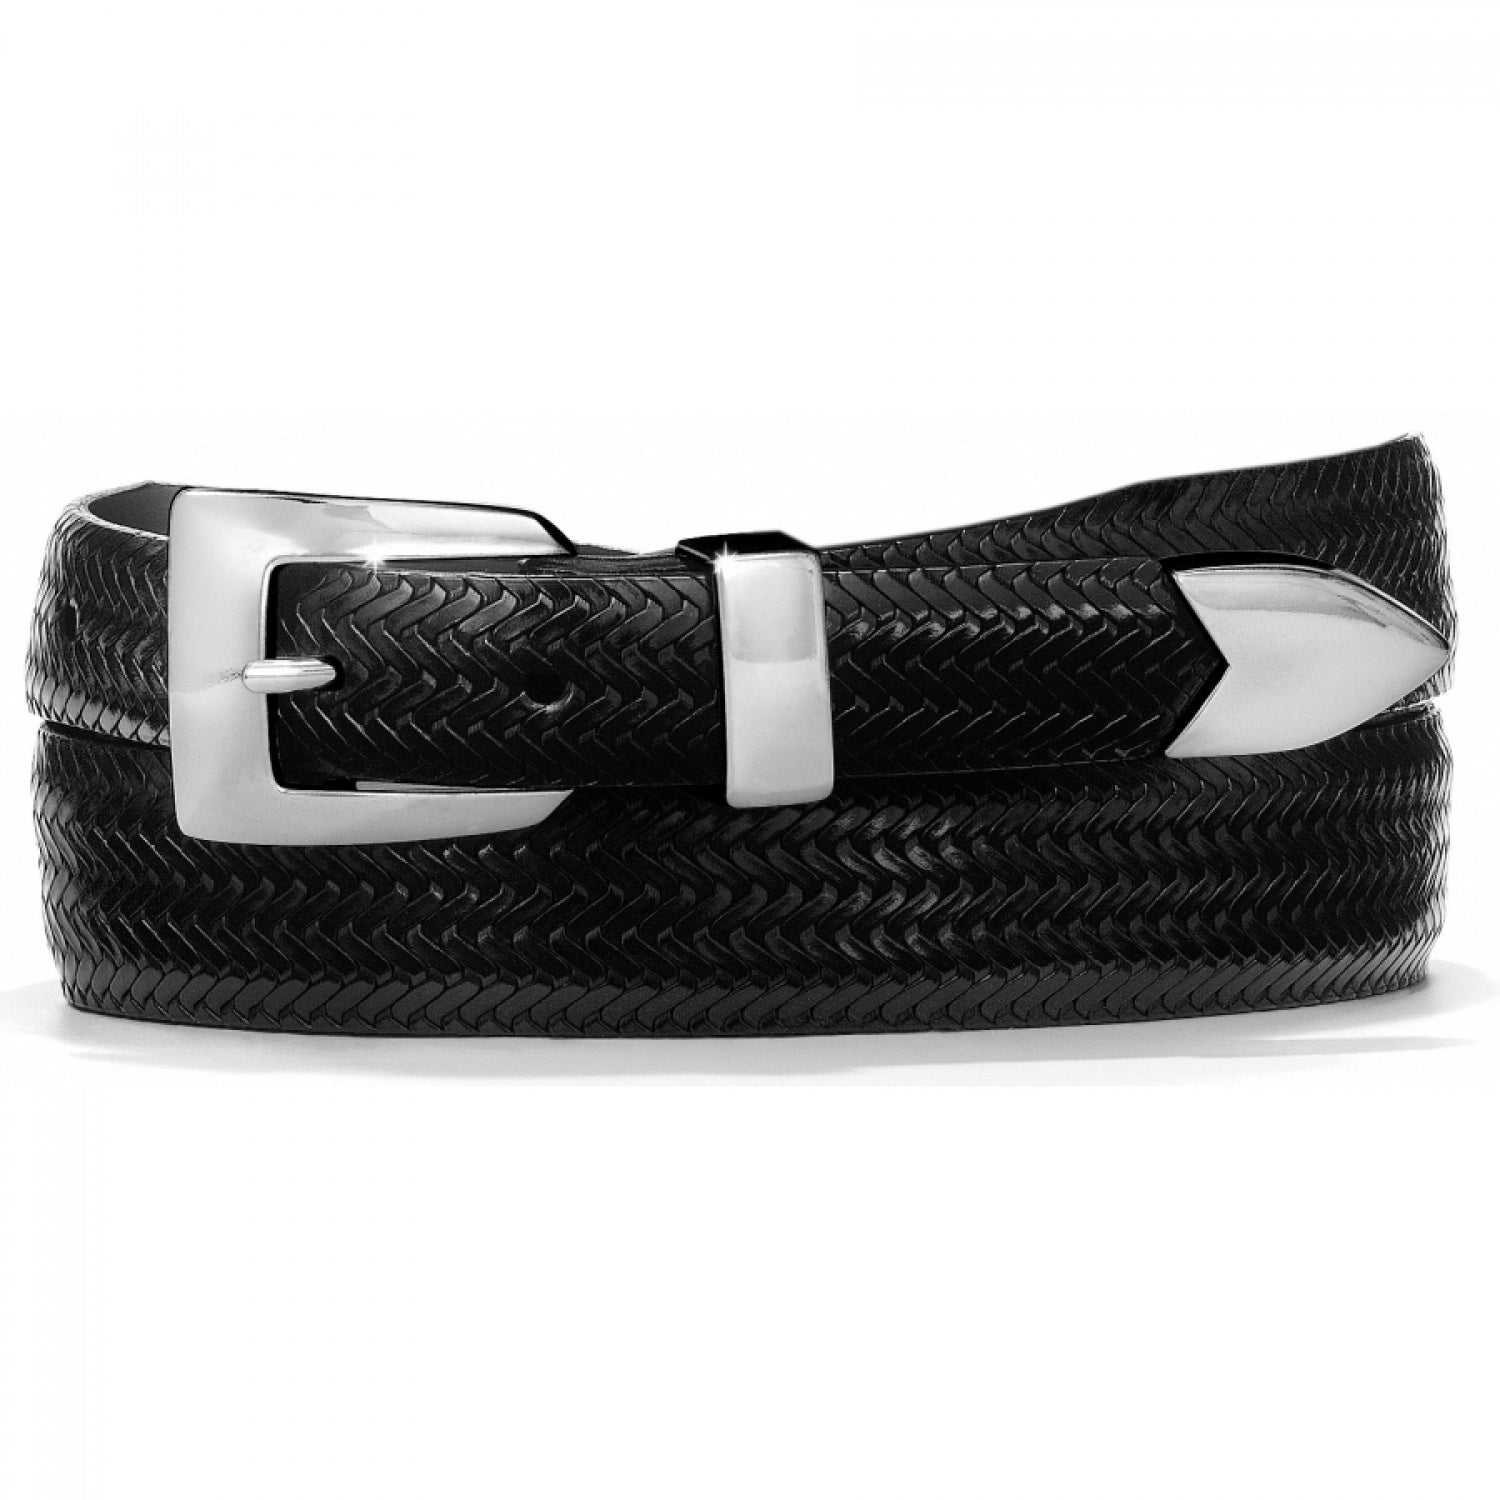 BRIGHTON - (15603) Avalon Basketweave Belt (Black)